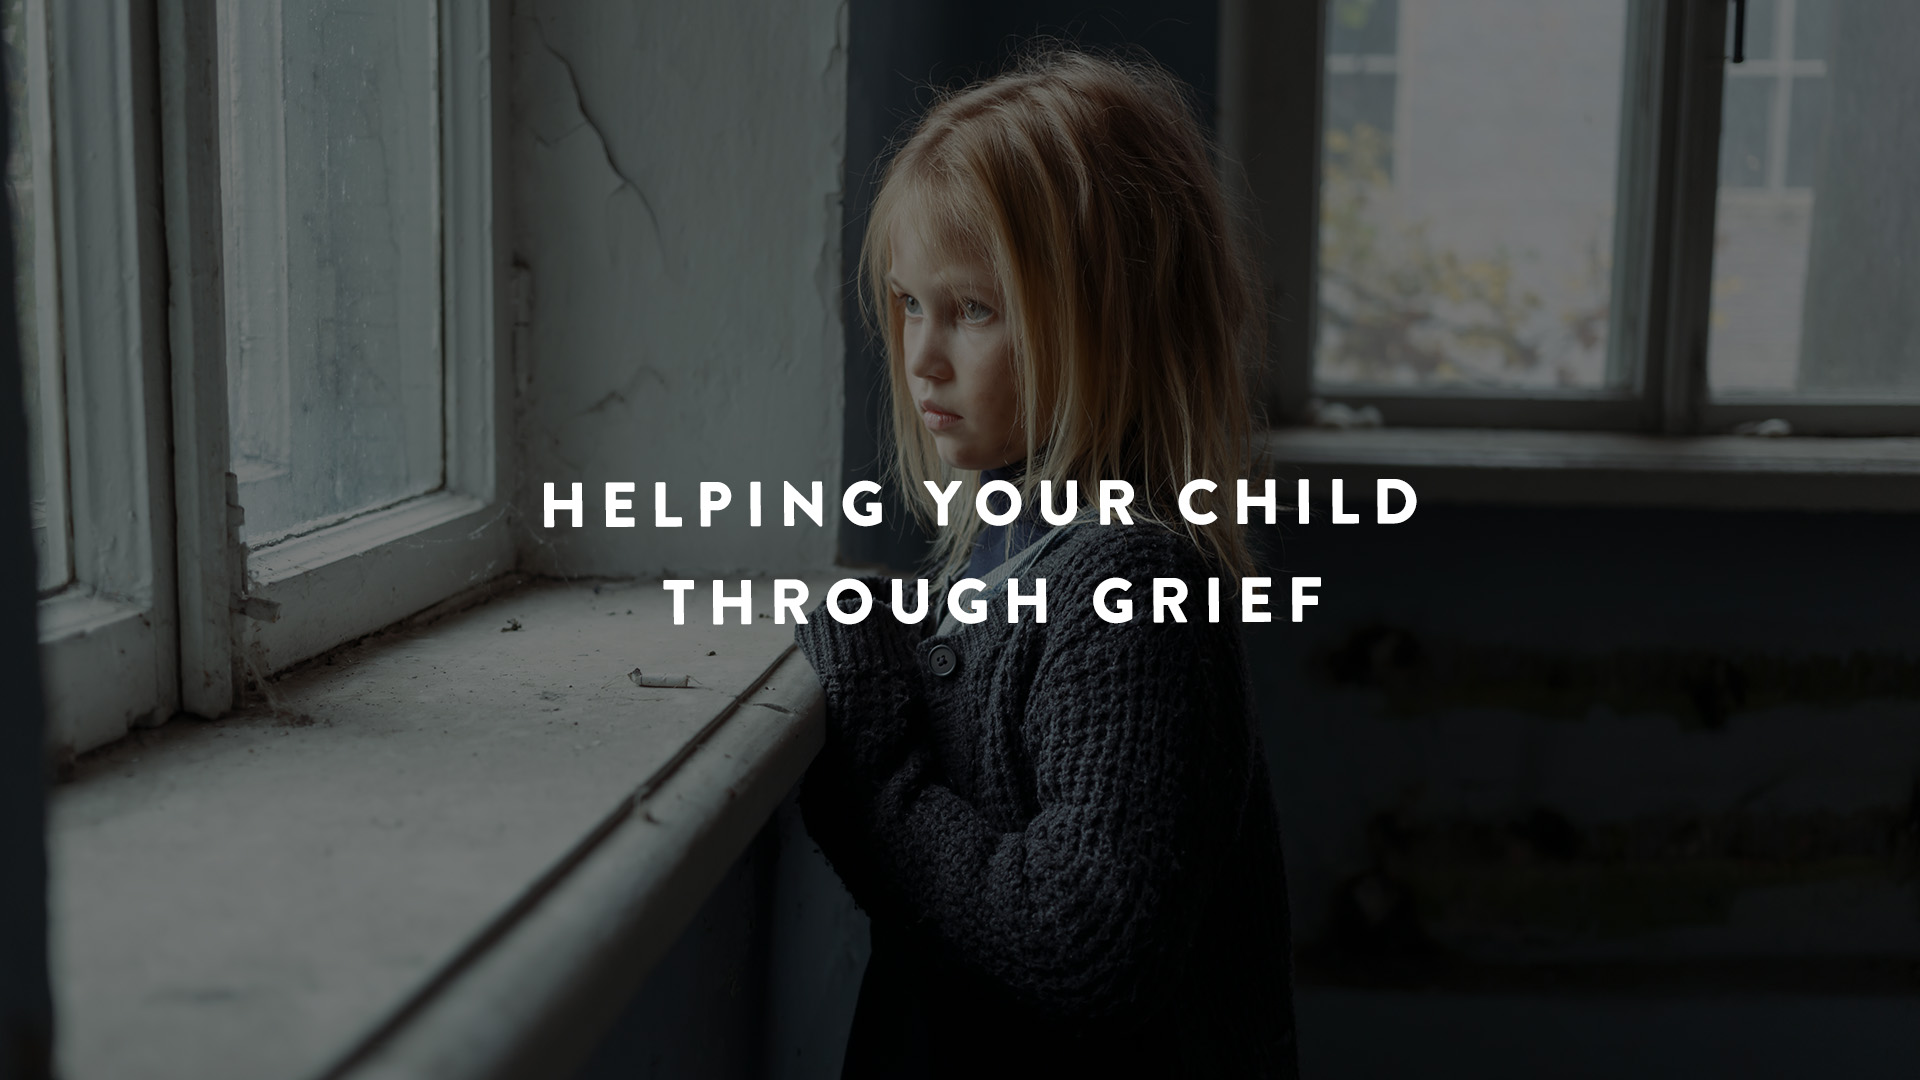 Helping child through grief